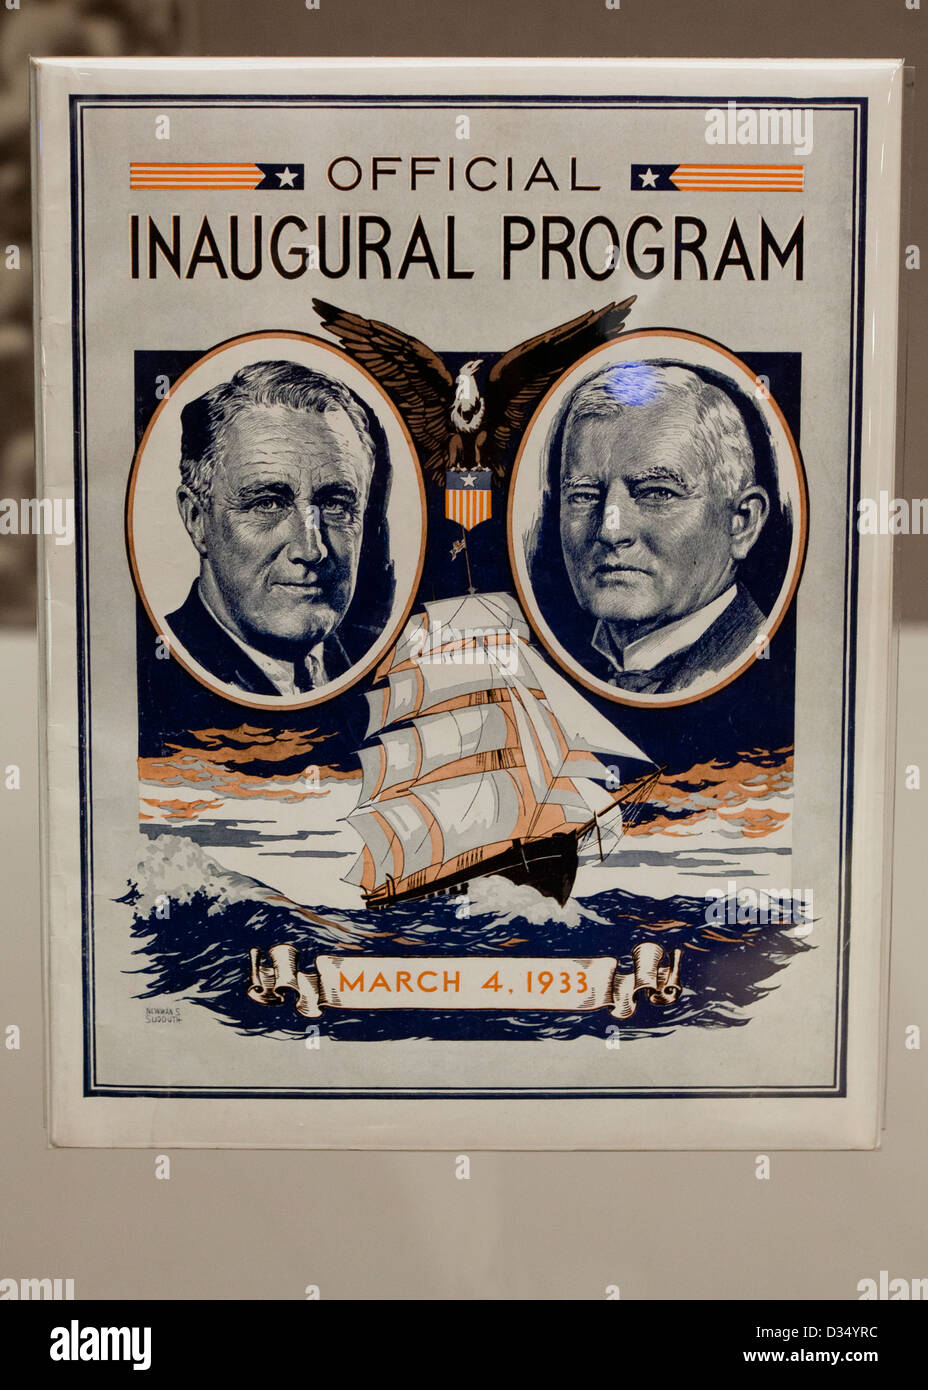 Roosevelt and Garner Official Inaugural program - Stock Image